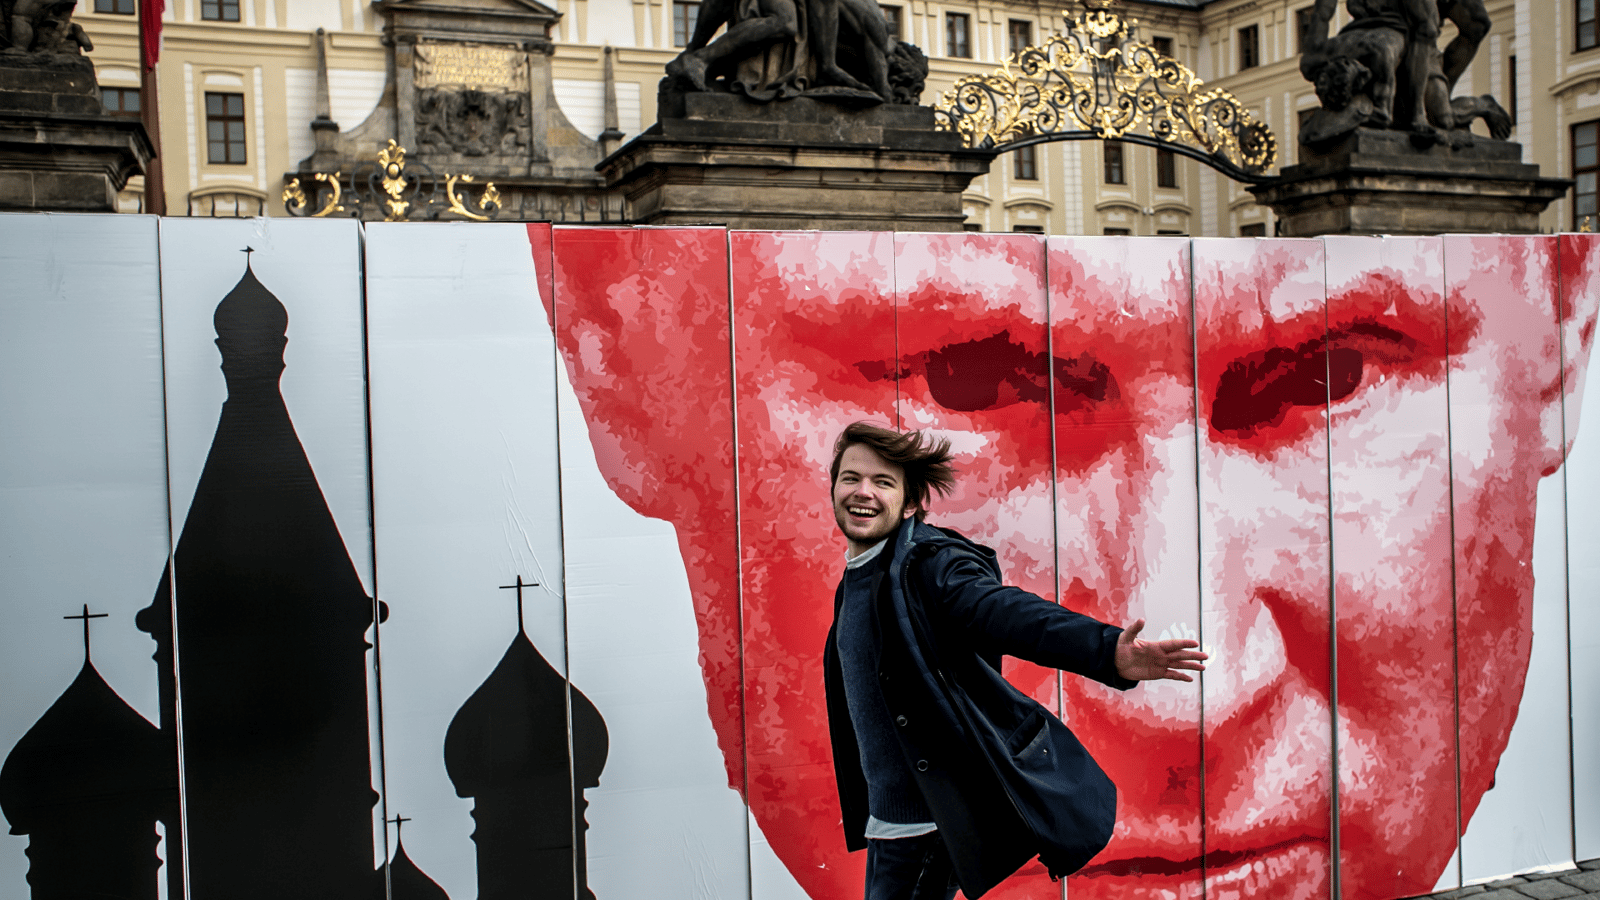 Image - A man passes a symbolic wall during a protest in front of the Prague Castle.